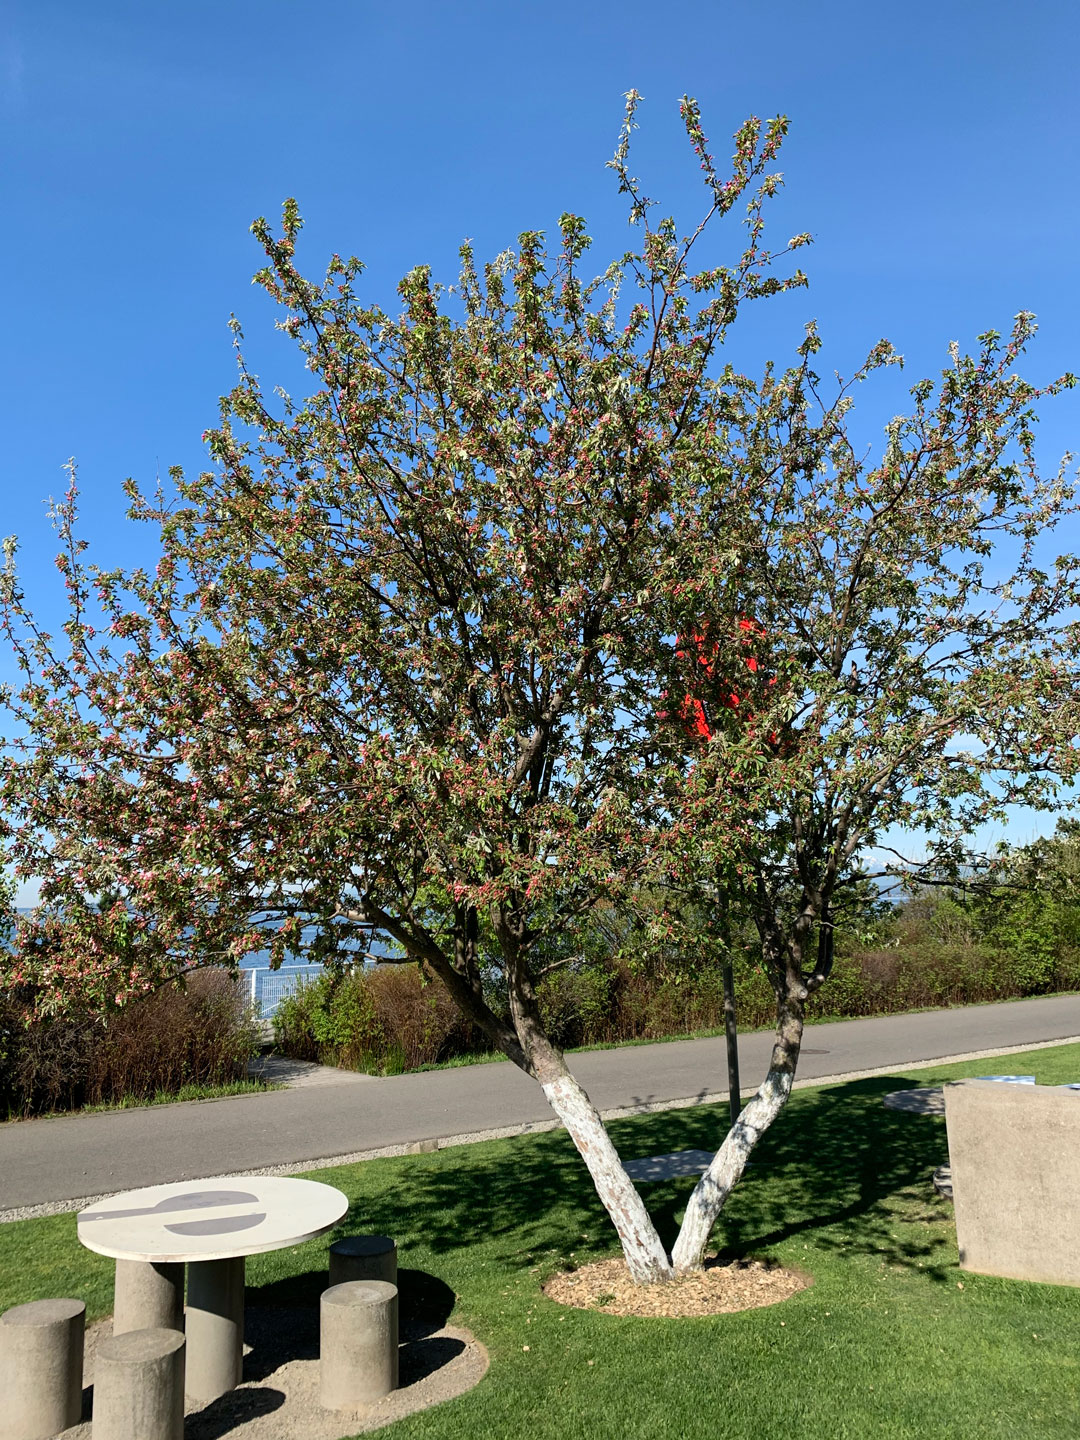 Tour the Olympic Sculpture Park's Trees